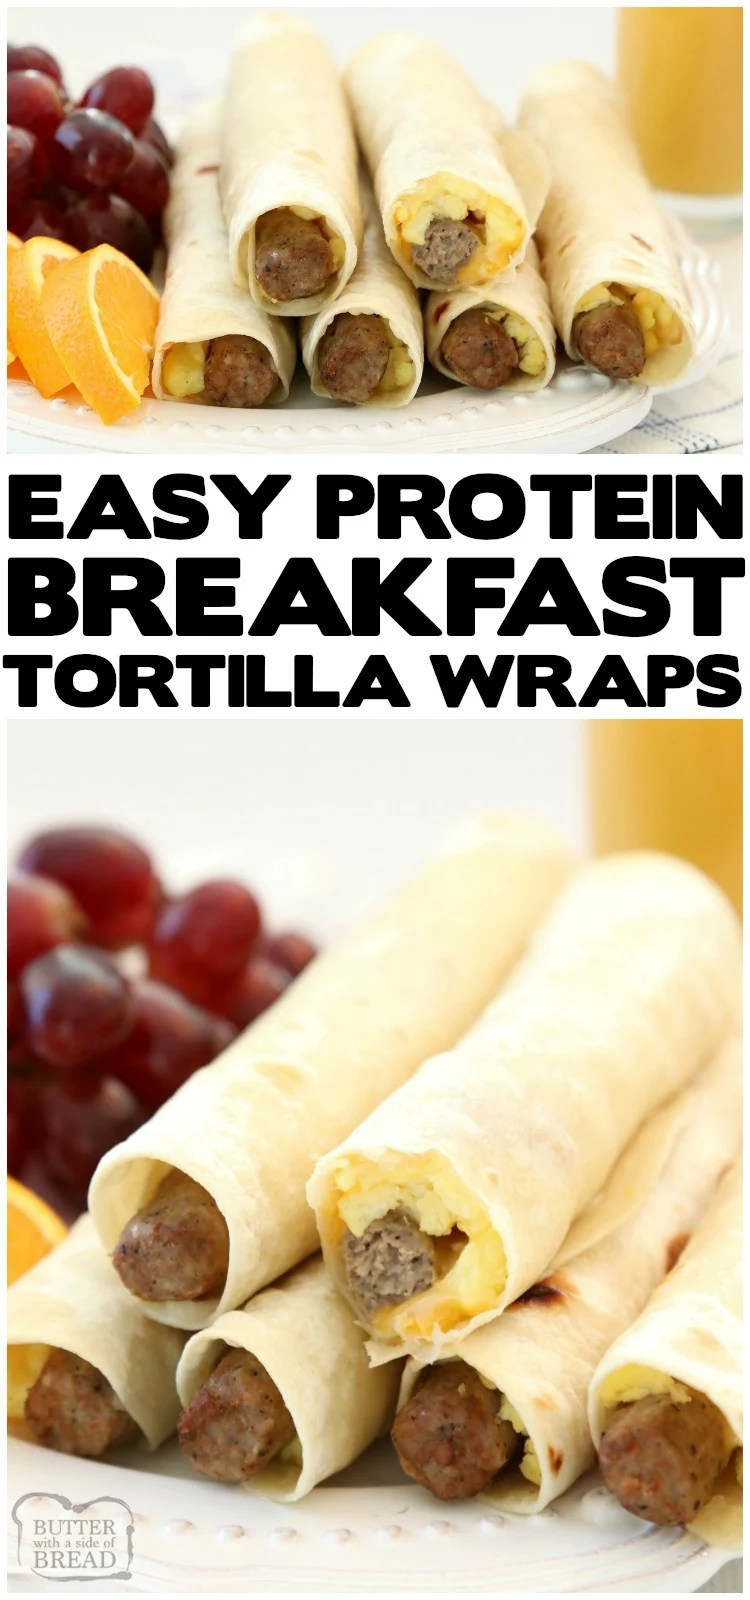 High Protein Breakfast Wraps made with turkey sausage, eggs and cheese wrapped in a fresh tortilla. Easy on the go breakfast idea that's delicious and & satisfying for everyone!